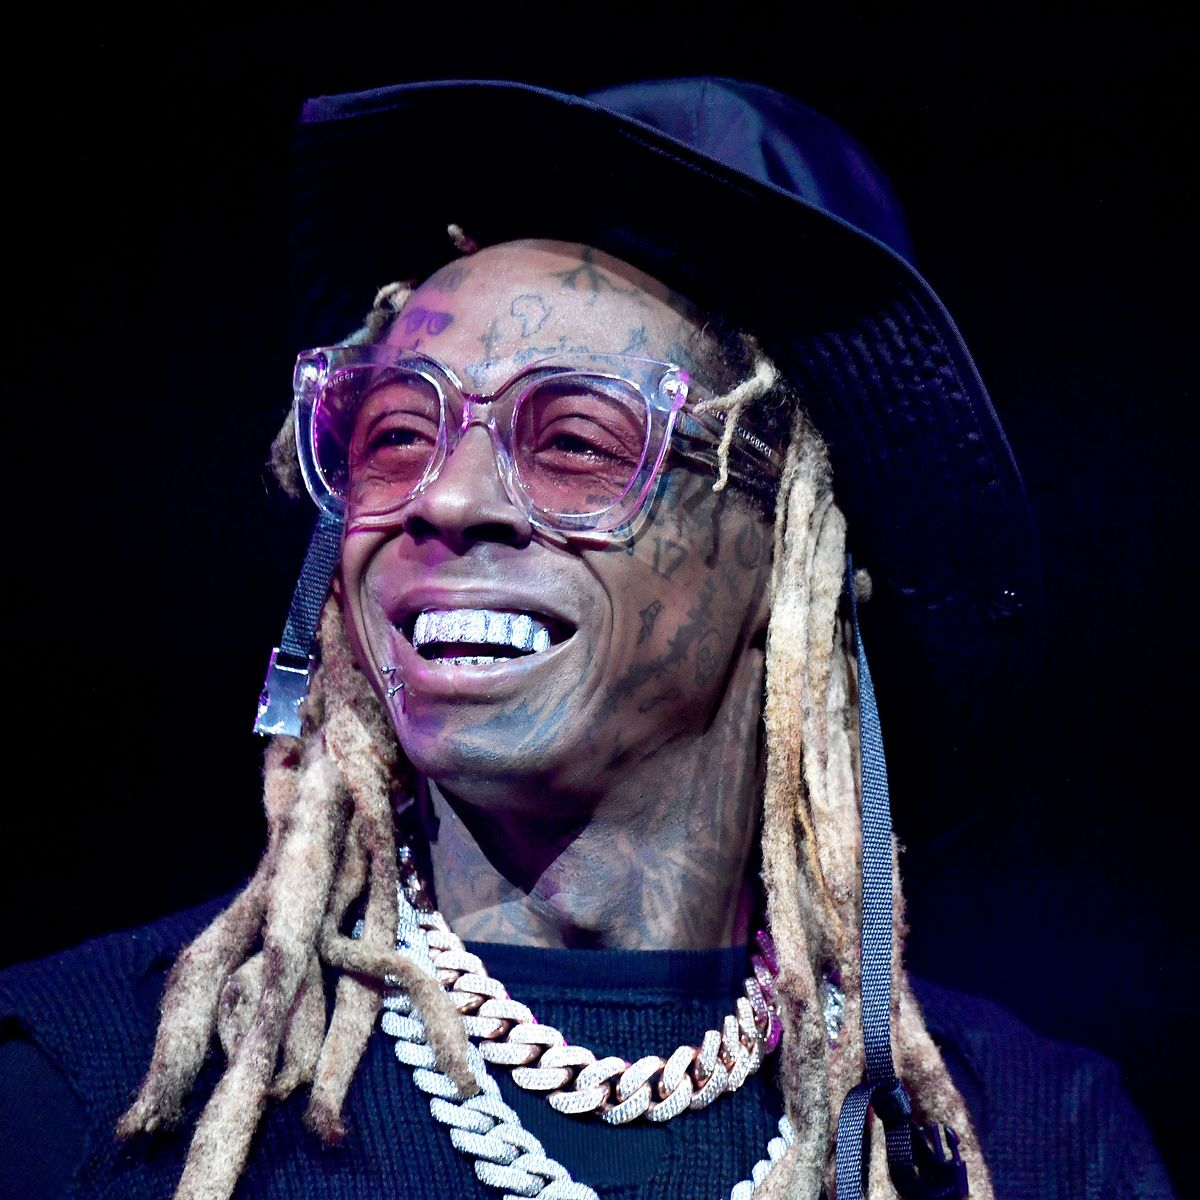 lil-wayne-shares-a-message-following-the-alleged-breakup-with-his-gf